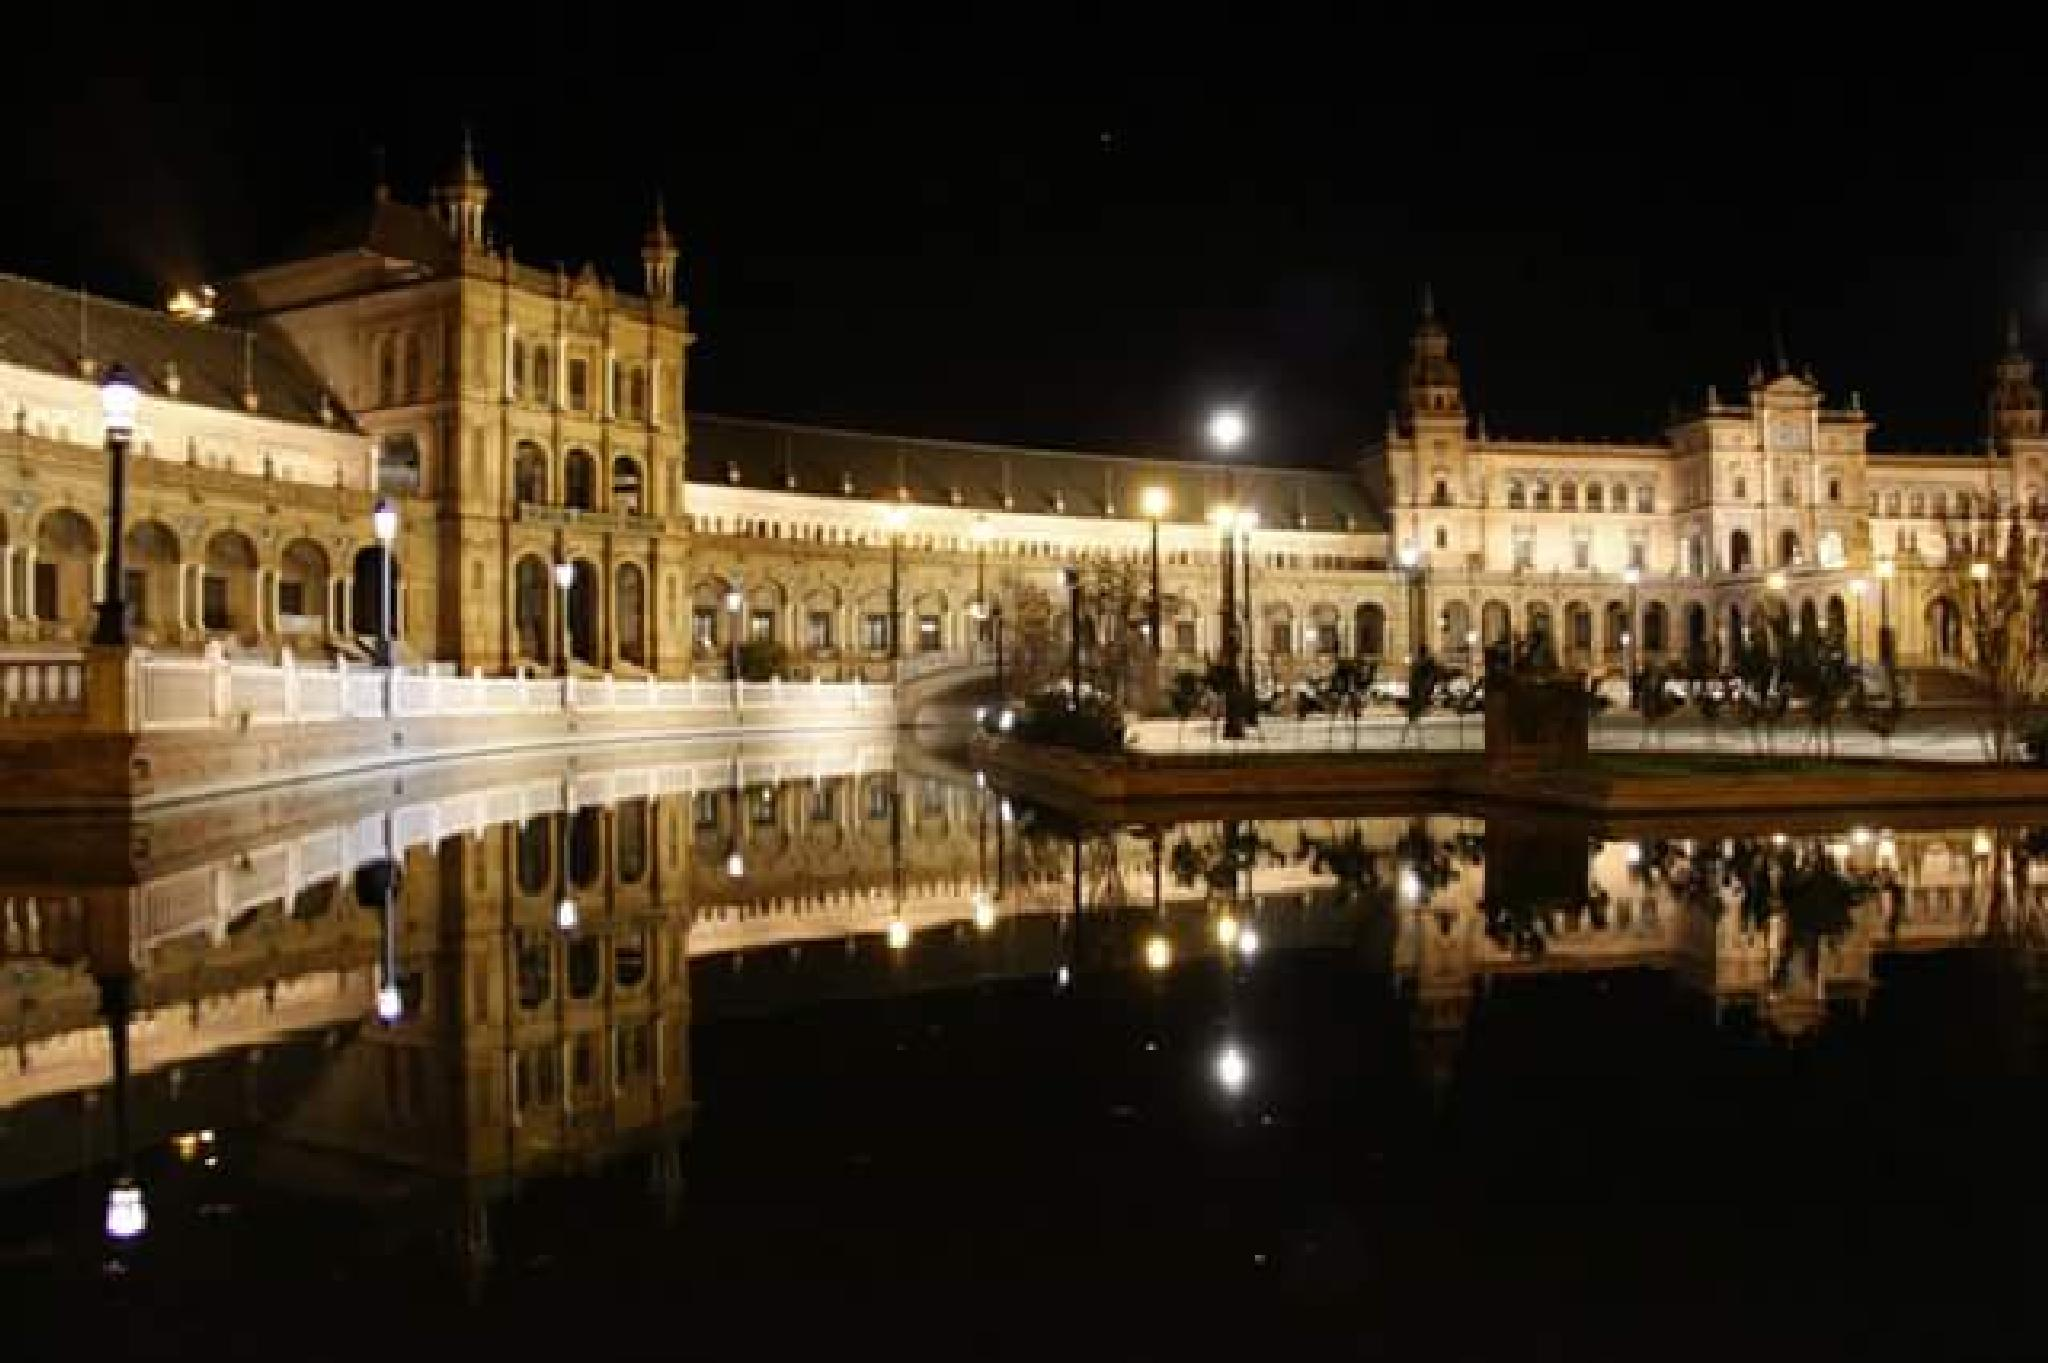 Spain's place, Sevilla by thierrylorenzo